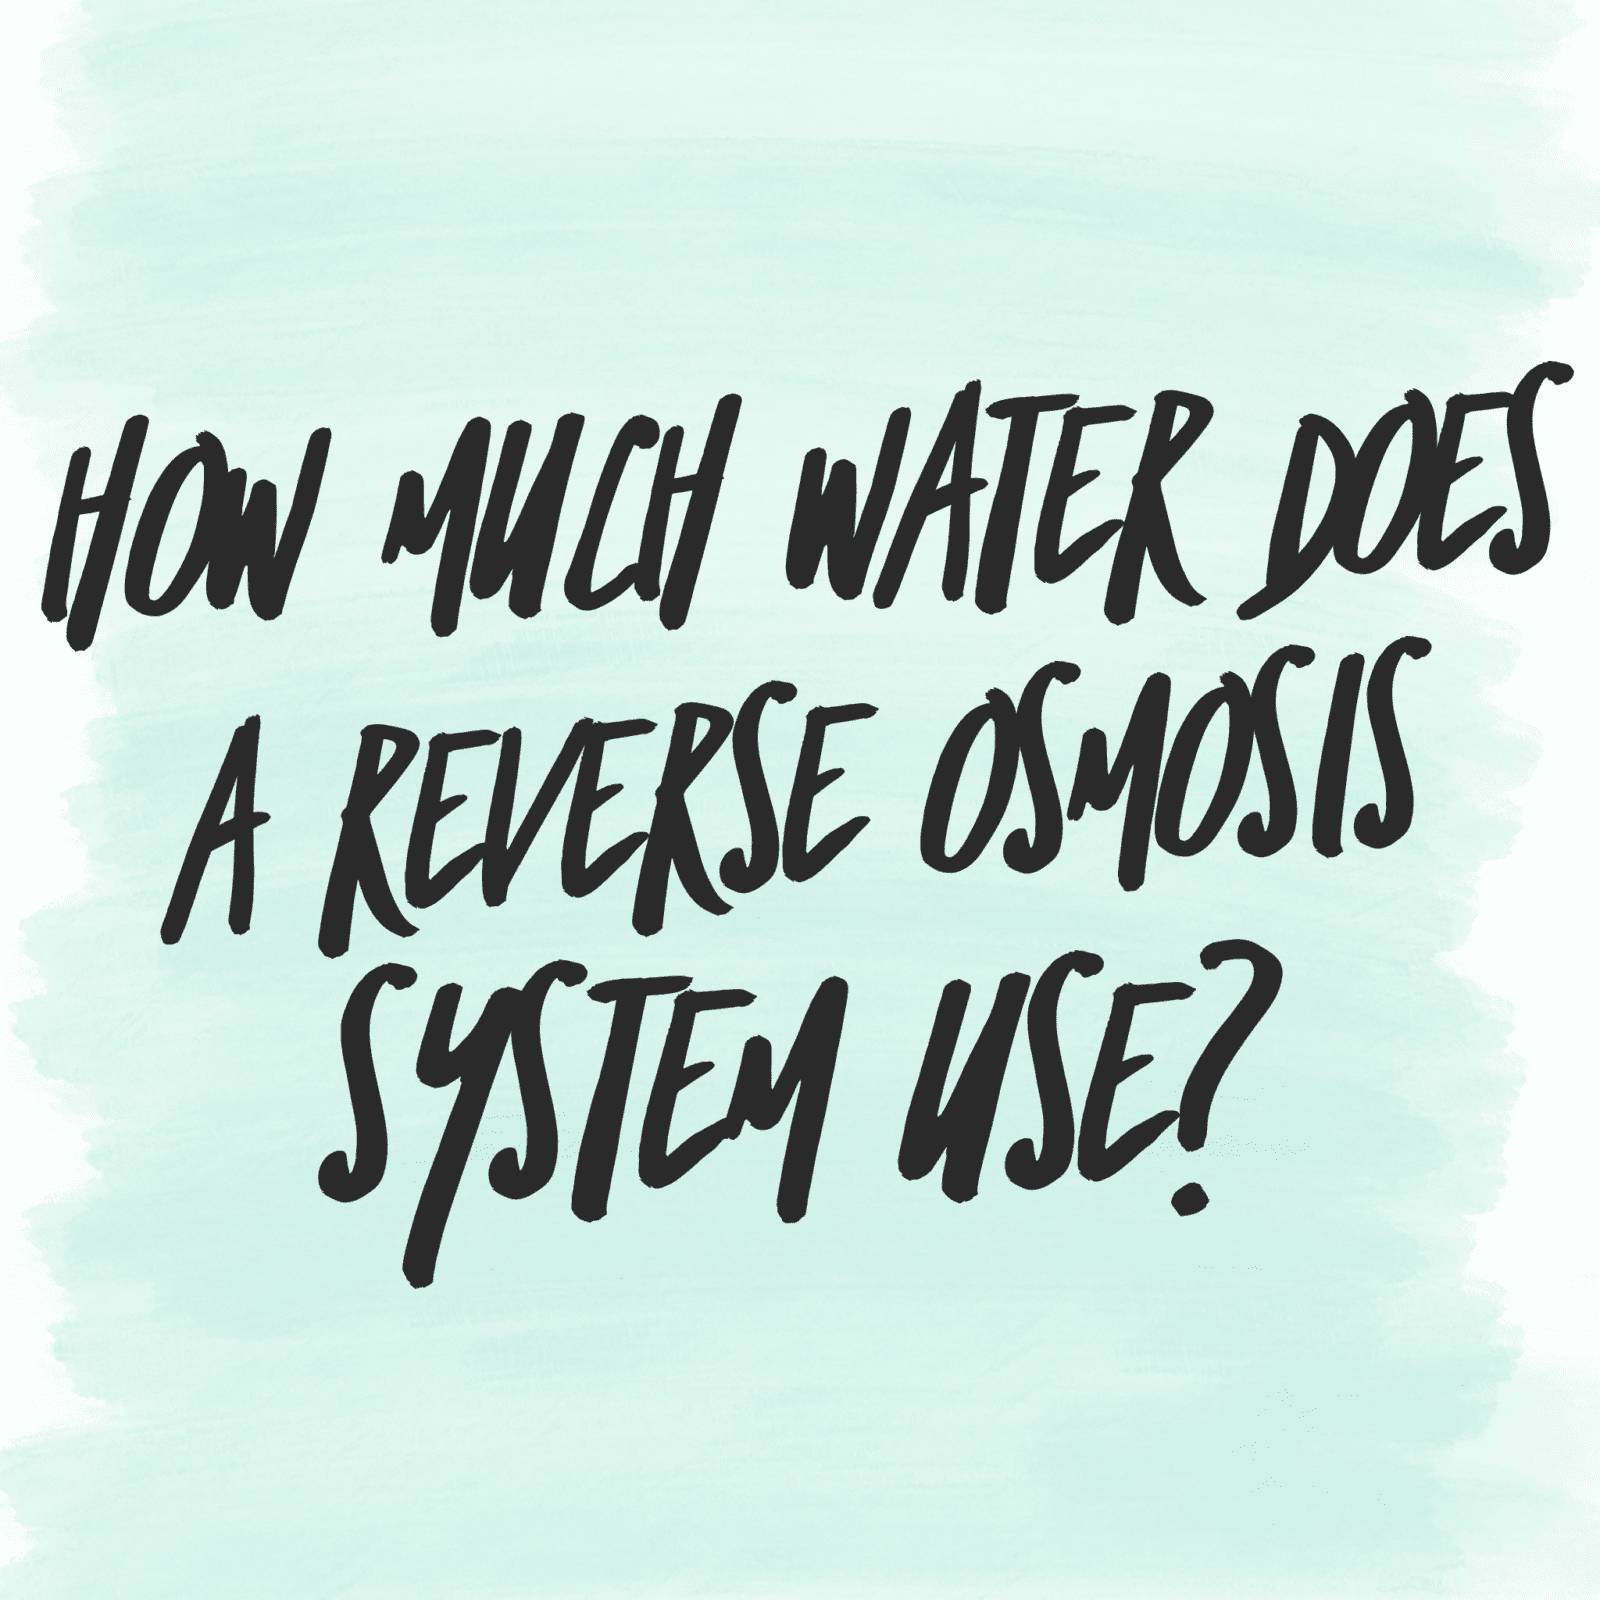 How Much Water Does Reverse Osmosis Waste?